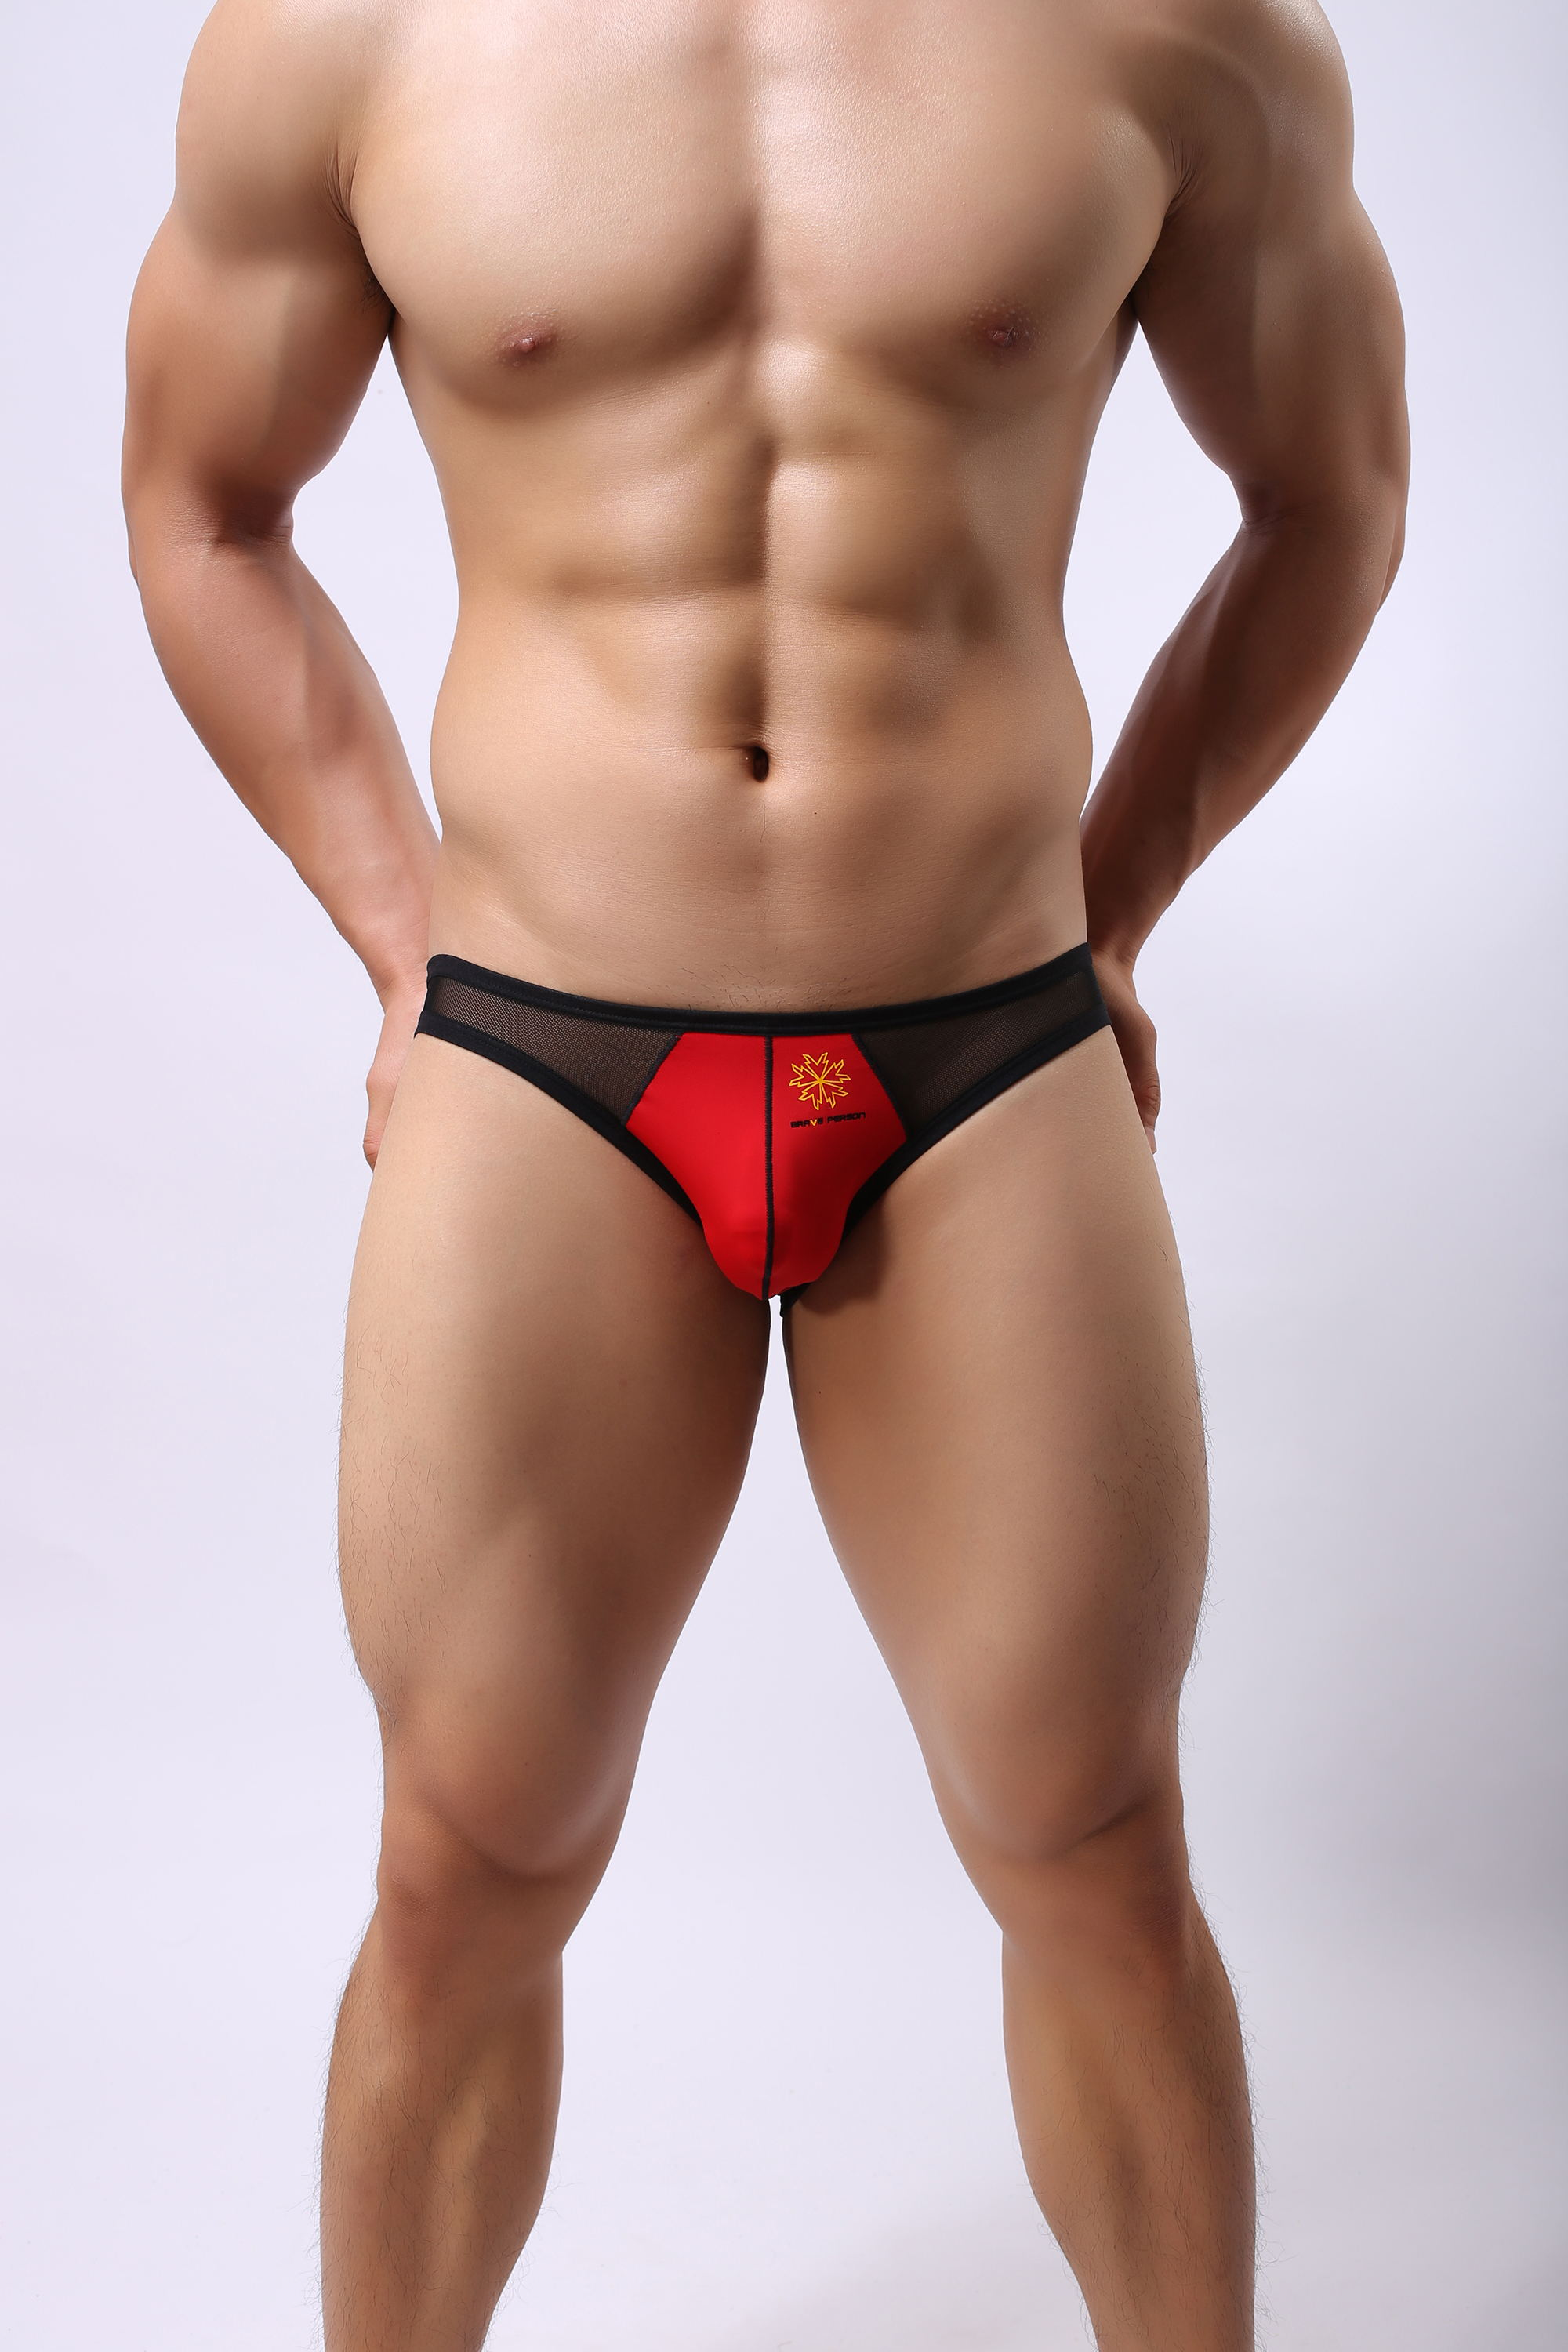 Mens Enhancing Underwear 15